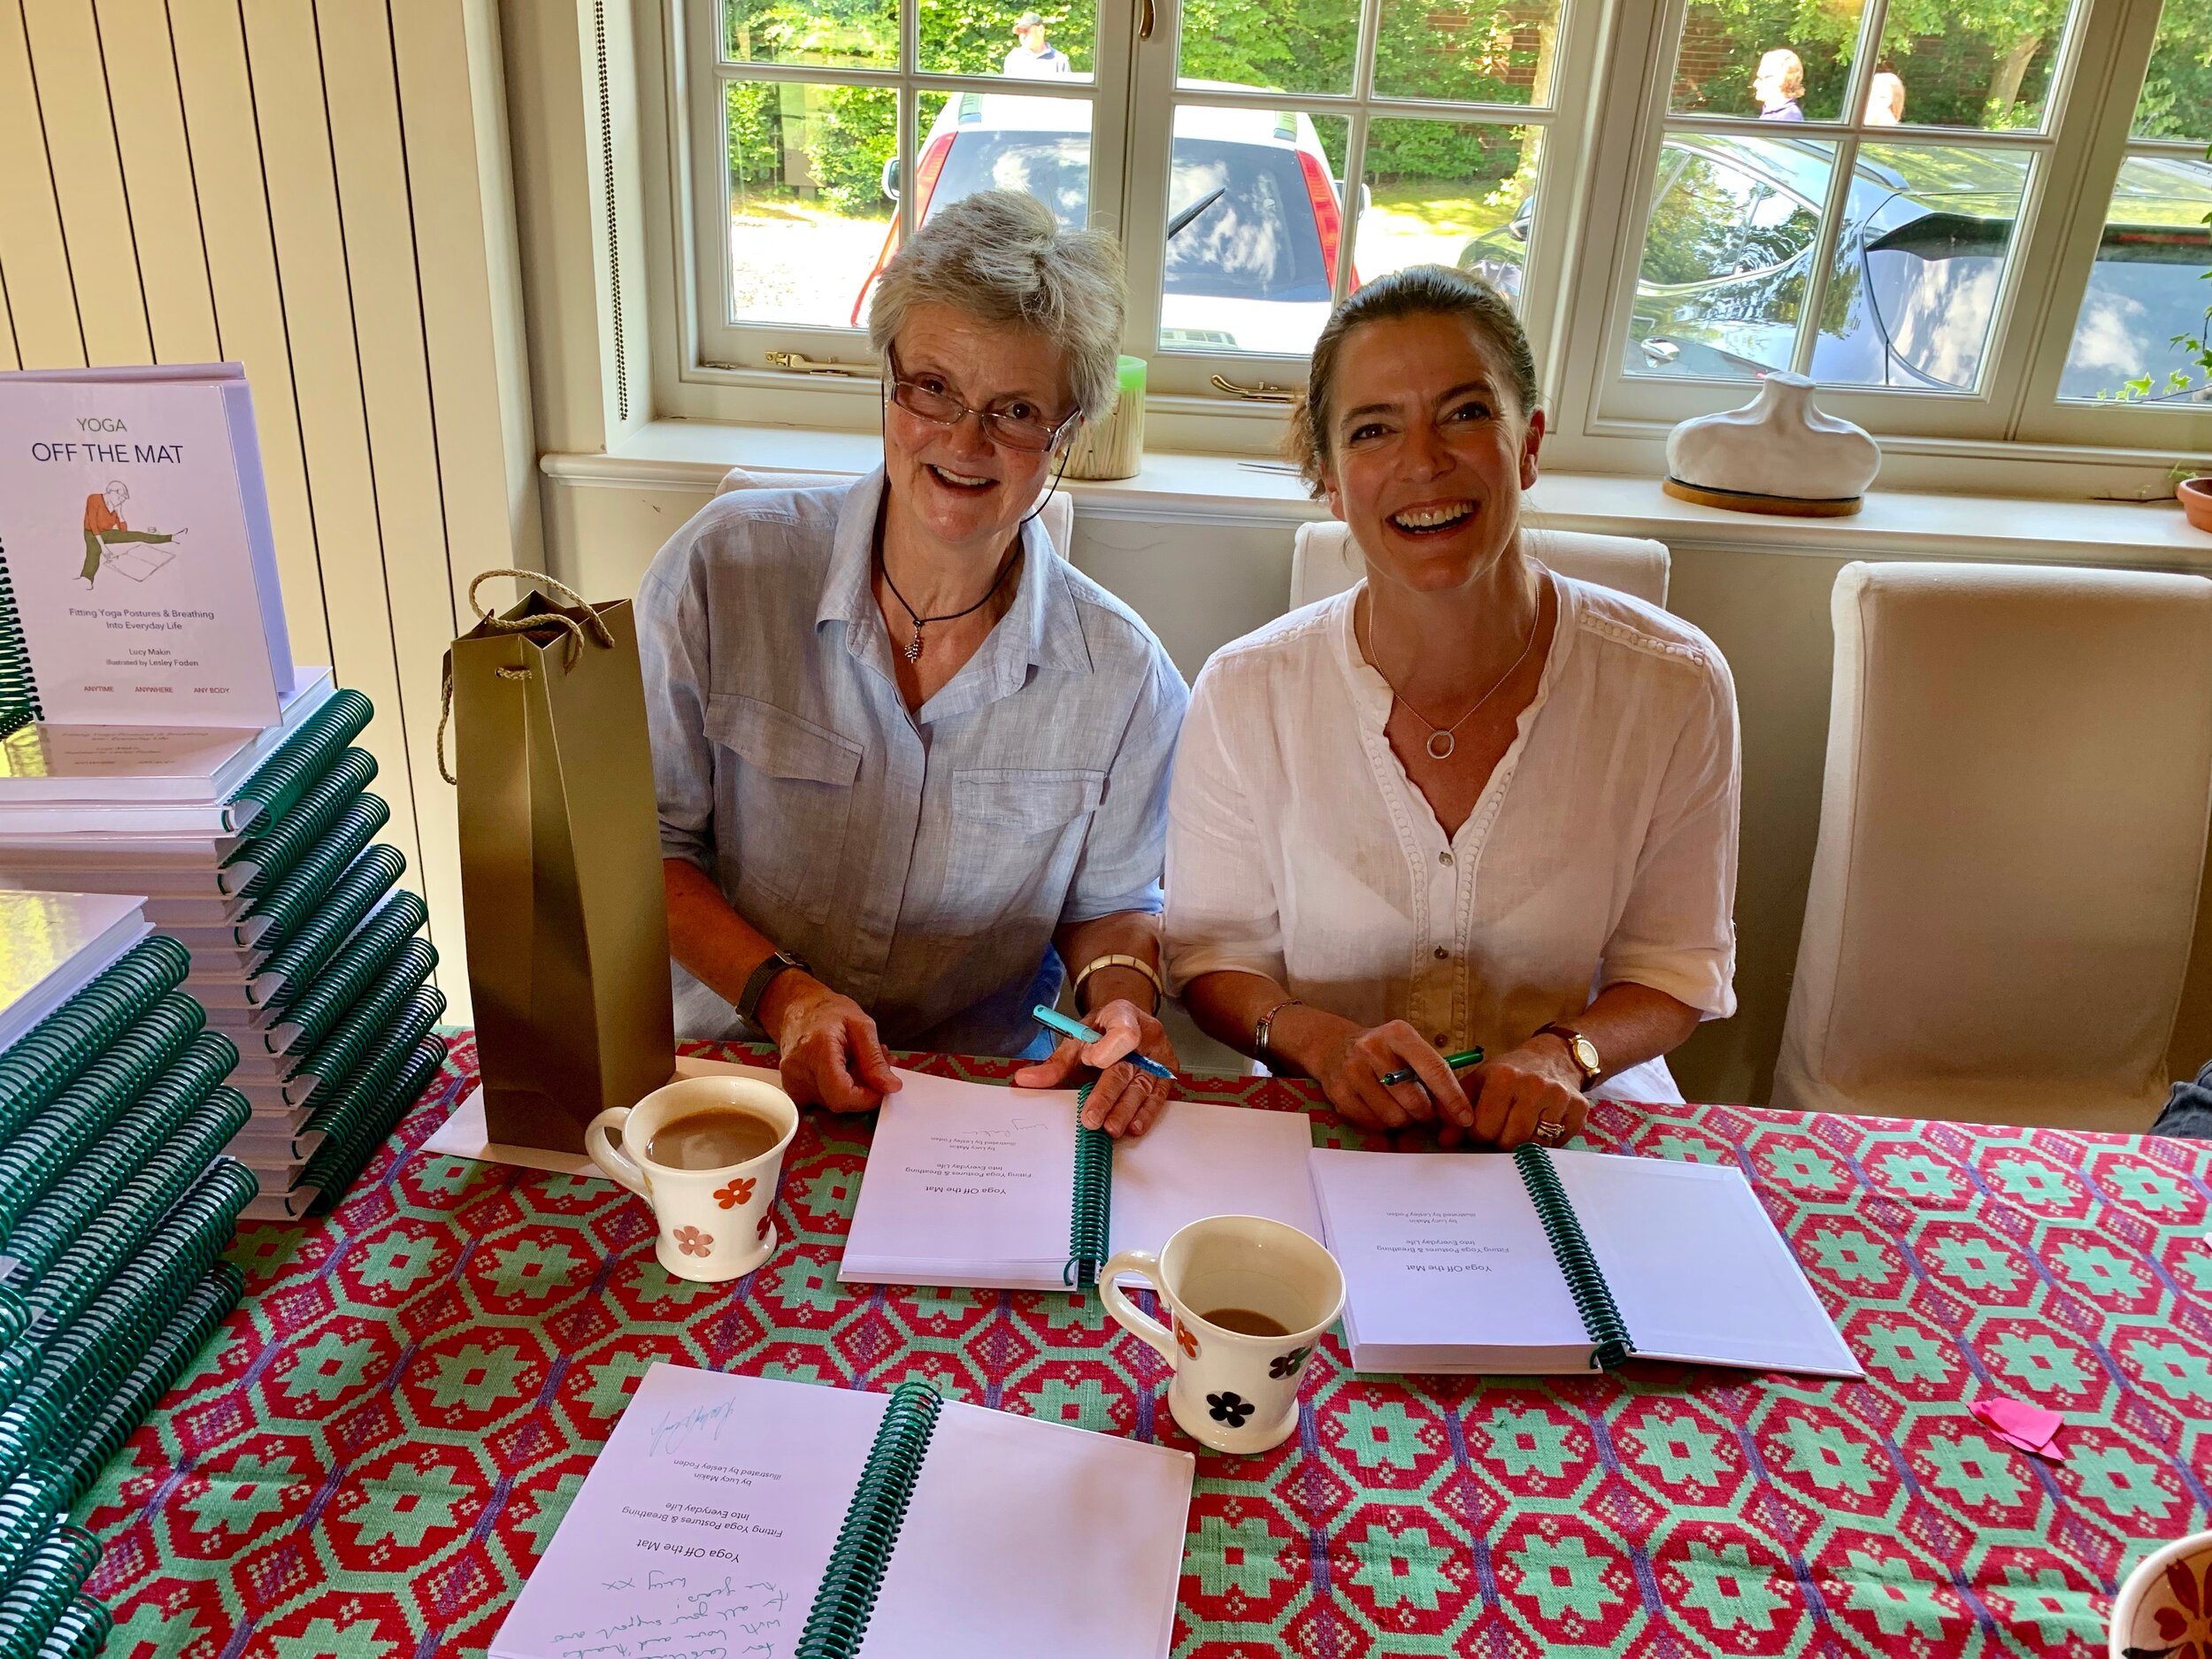 Lucy and me signing books on 22 June 2019